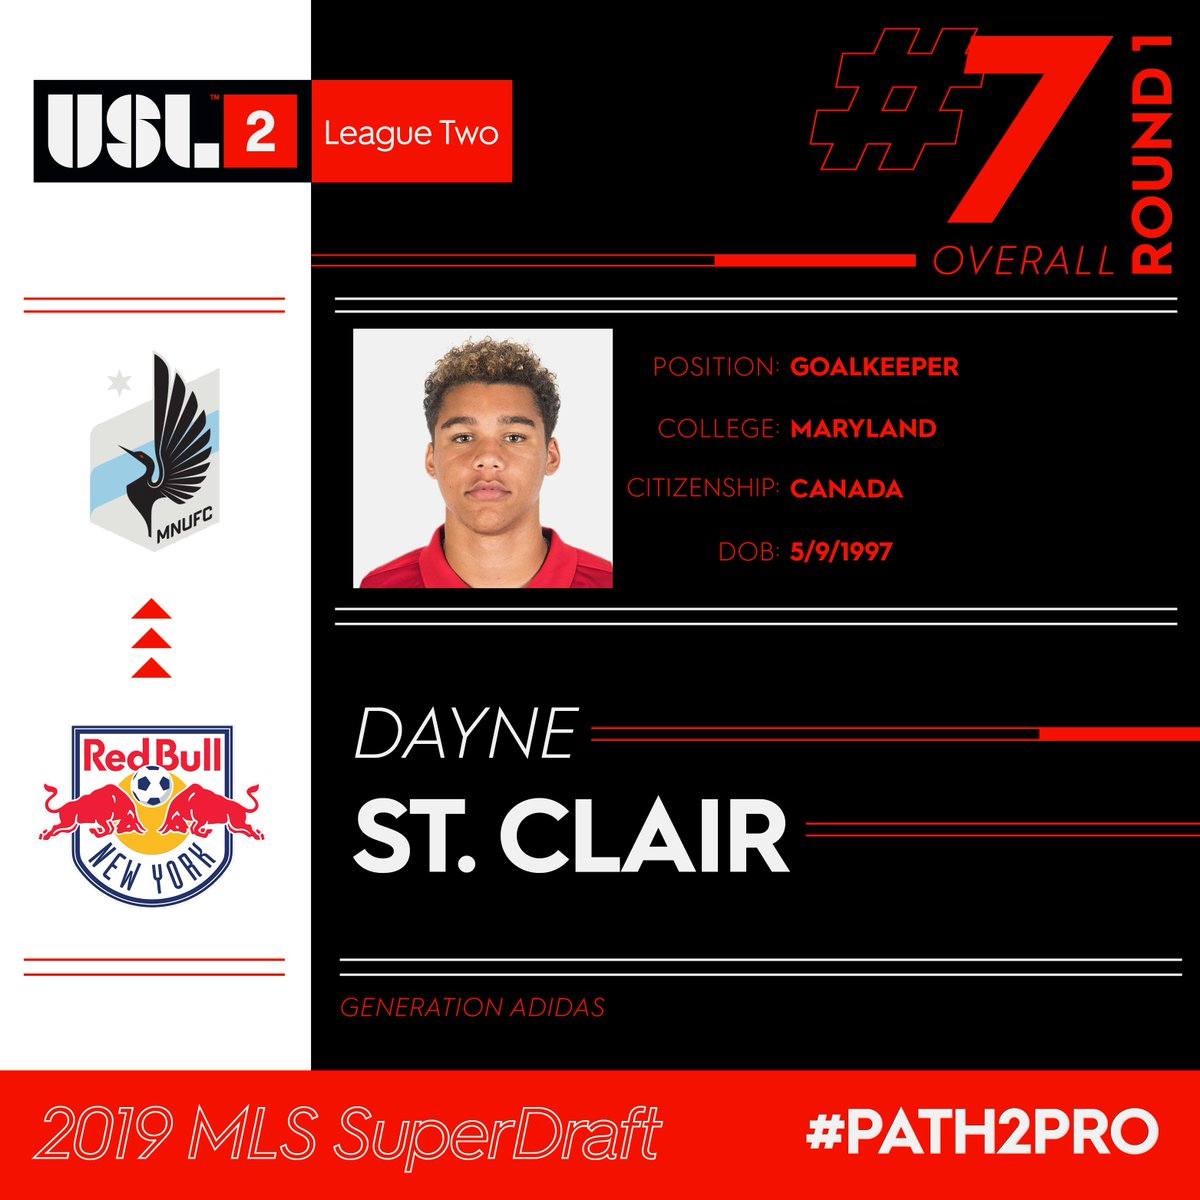 USL League Two's photo on Dayne St. Clair